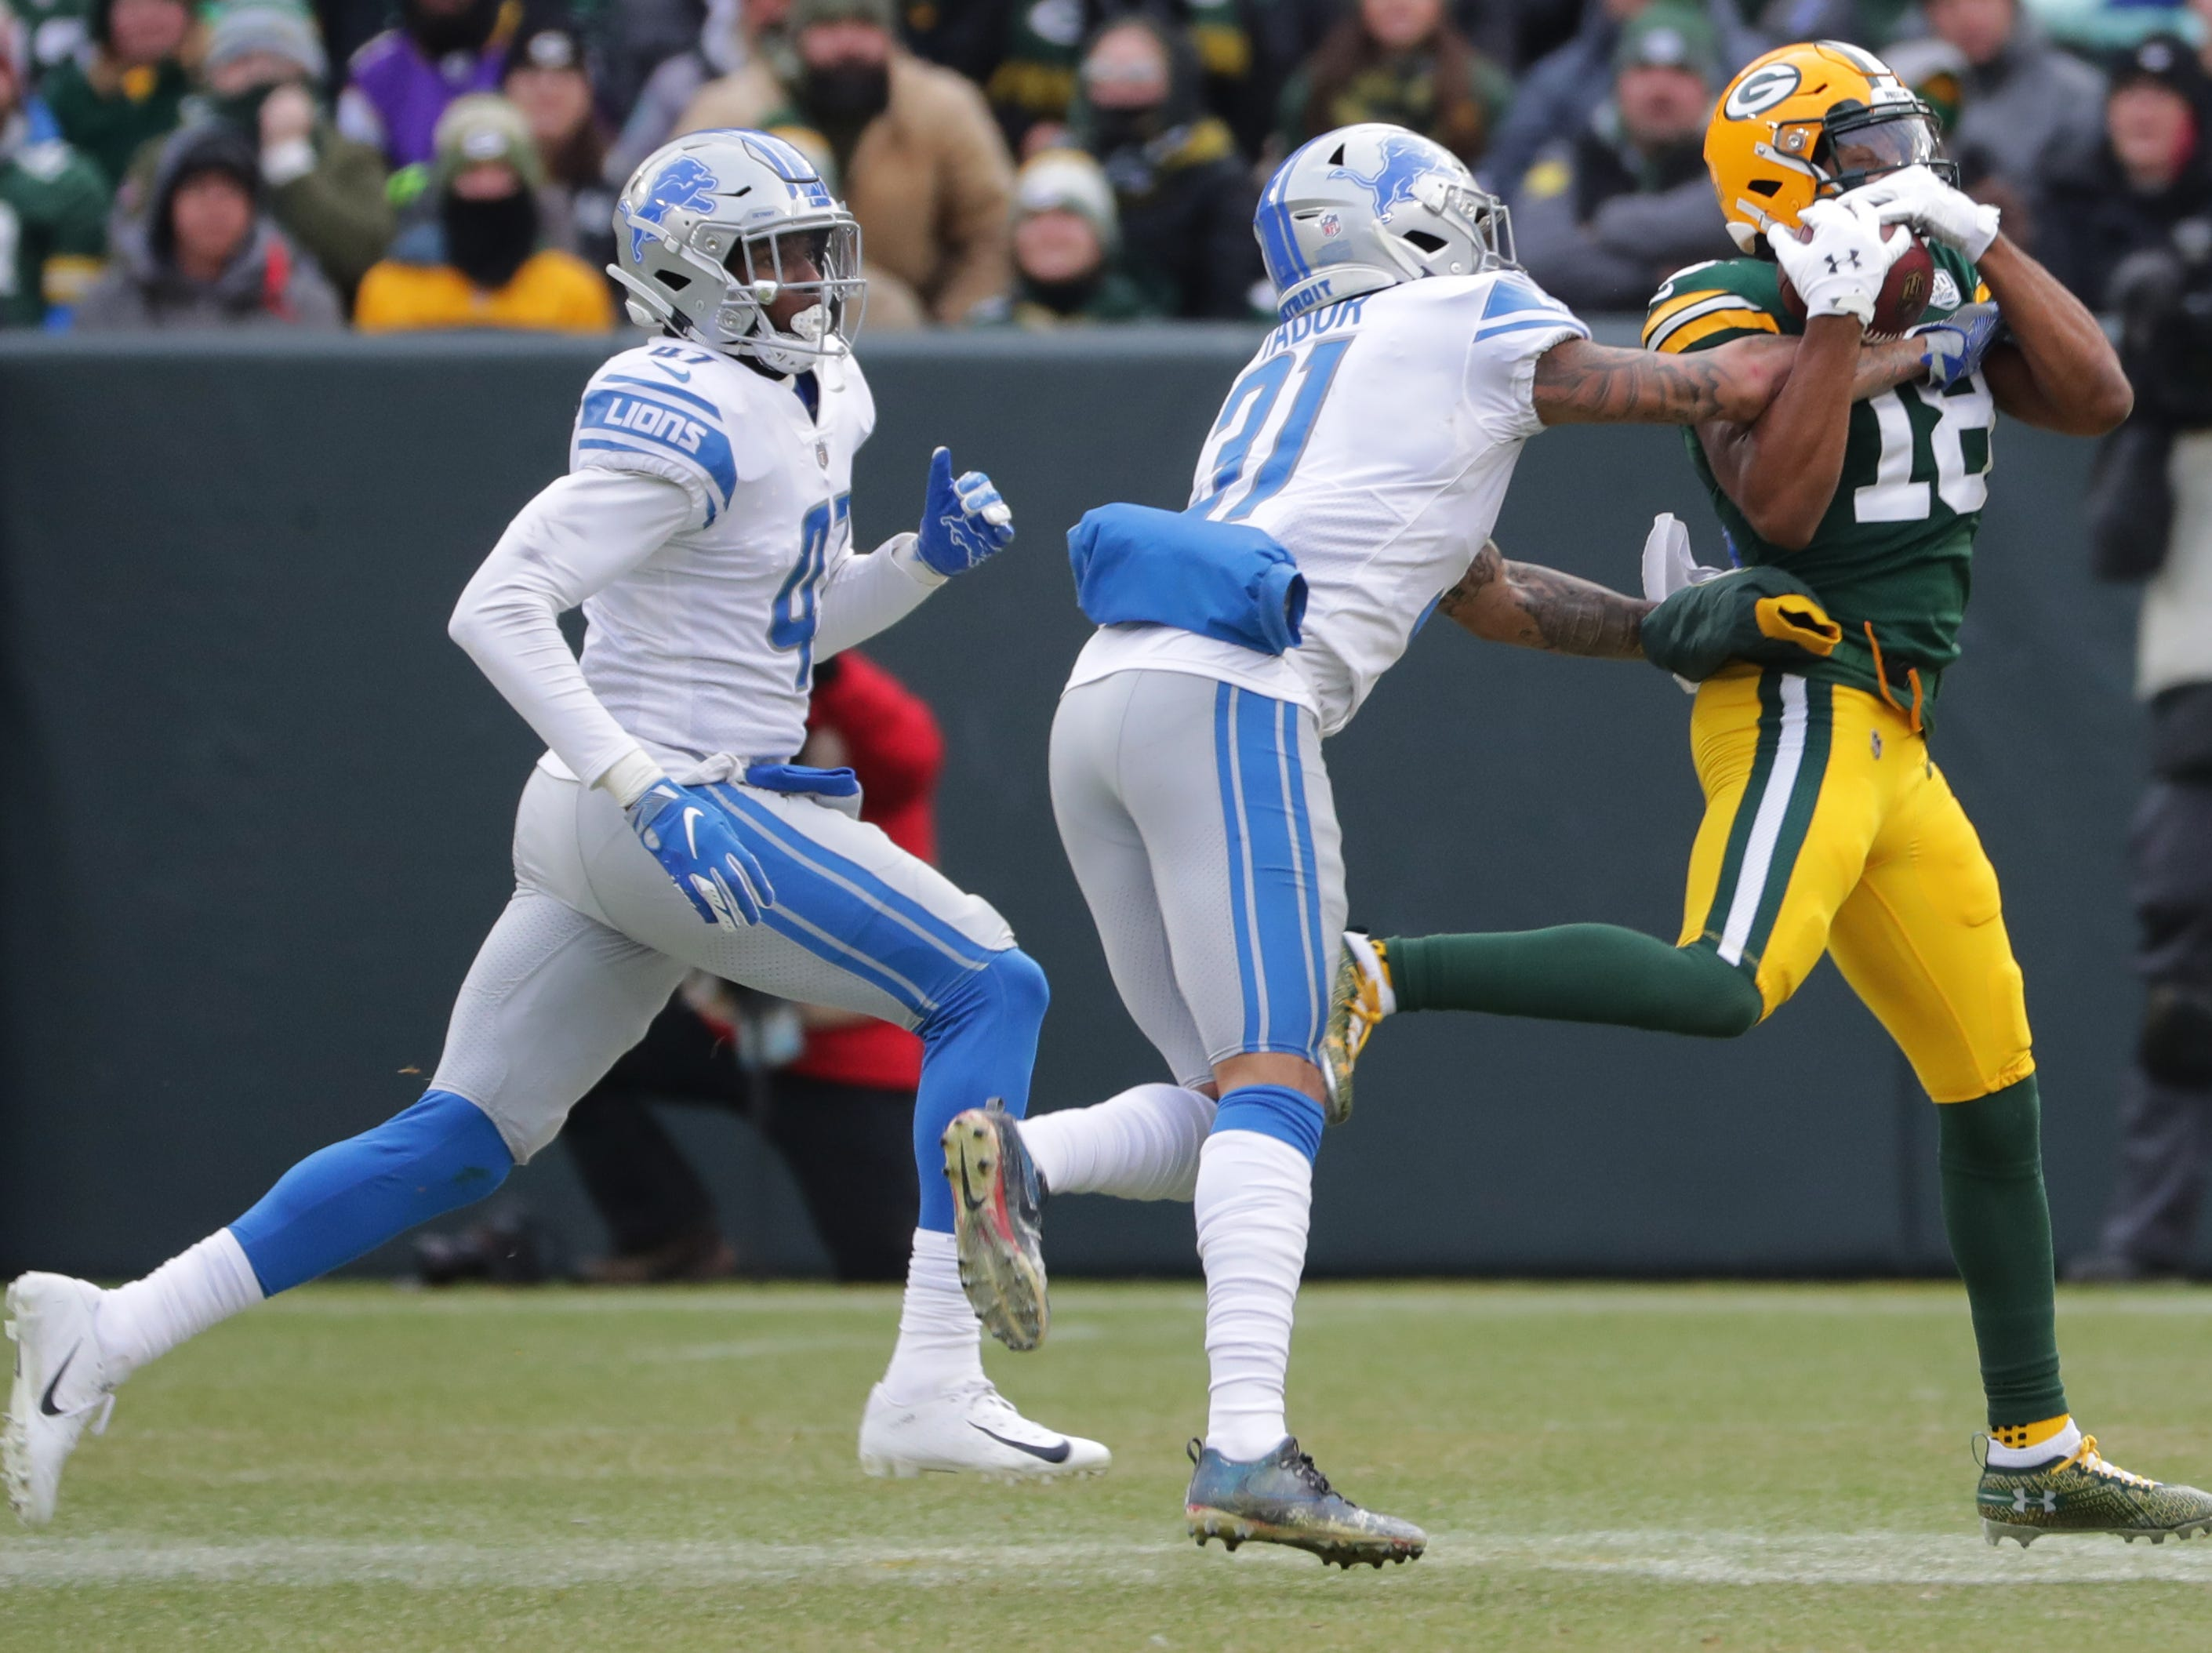 Green Bay Packers wide receiver Randall Cobb (18) snares a 27-yard reception while benign covered by Detroit Lions cornerback Teez Tabor (31) during the fourth quarter of their game Sunday, December 30, 2018 at Lambeau Field in Green Bay, Wis. The Detroit Lions beat the Green Bay Packers 31-0.  MARK HOFFMAN/MILWAUKEE JOURNAL SENTINEL